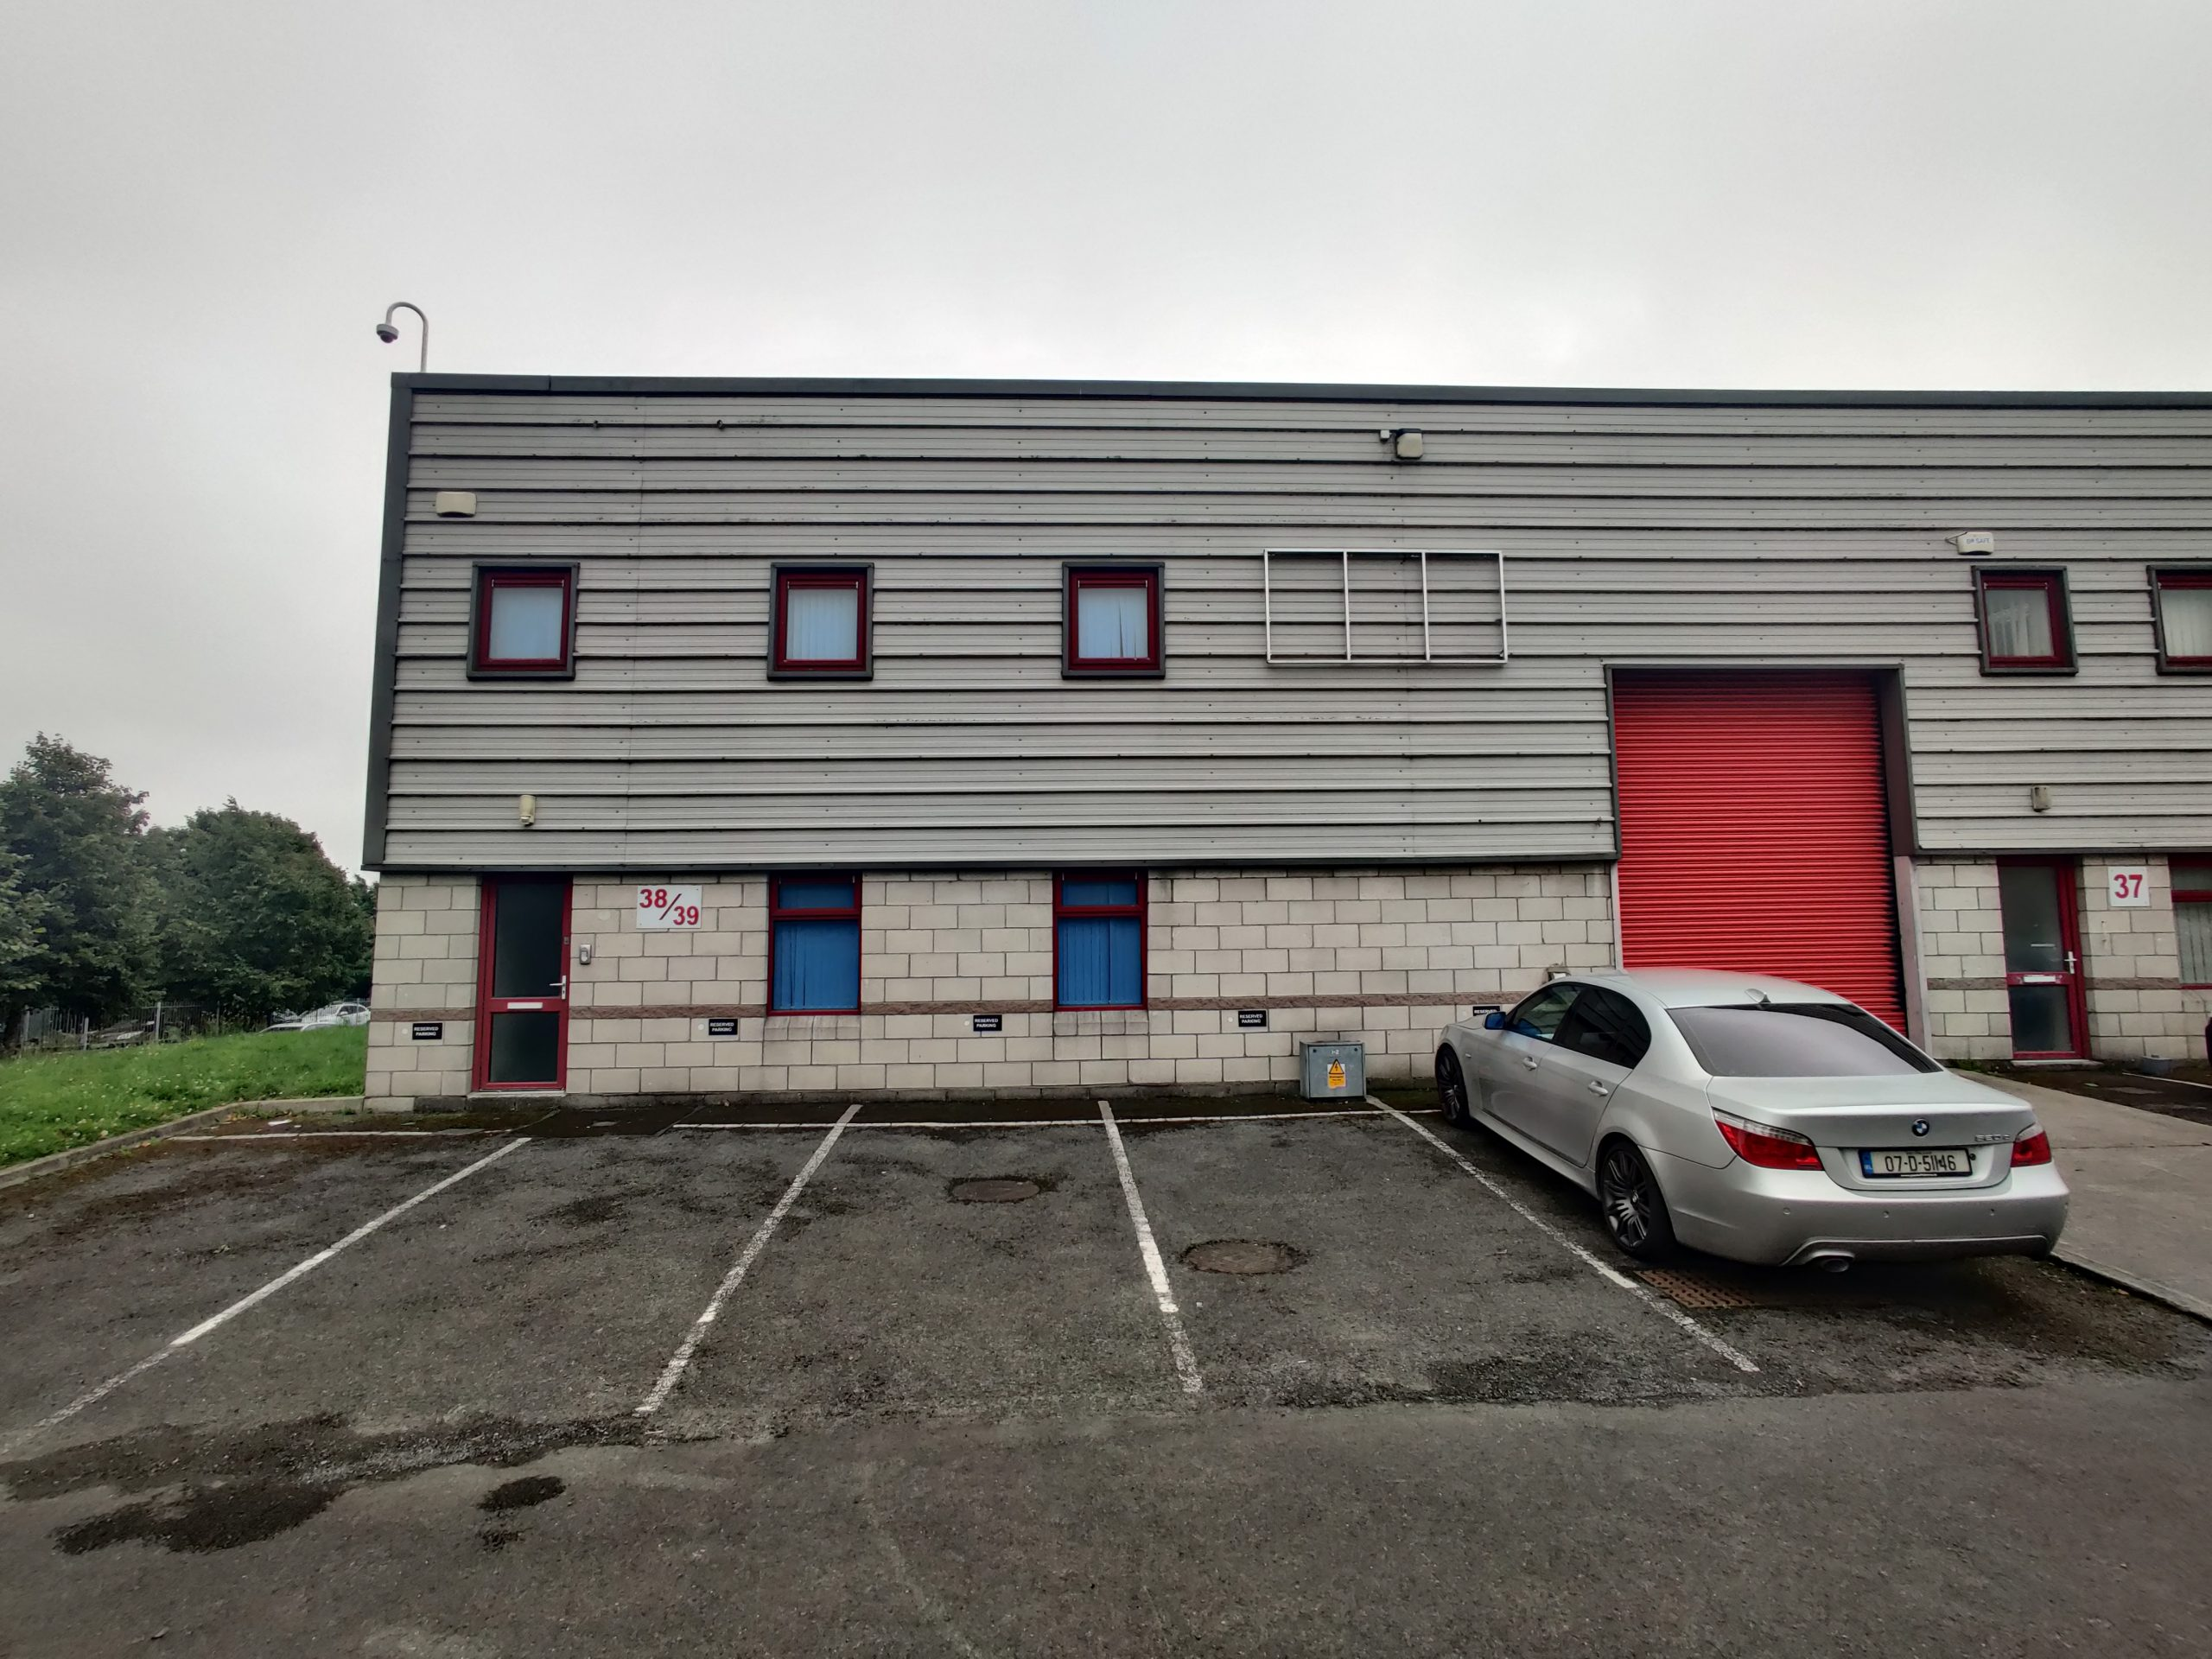 Unit 38/39 Finglas Business Park, Tolka Valley Road, Finglas, Dublin 11